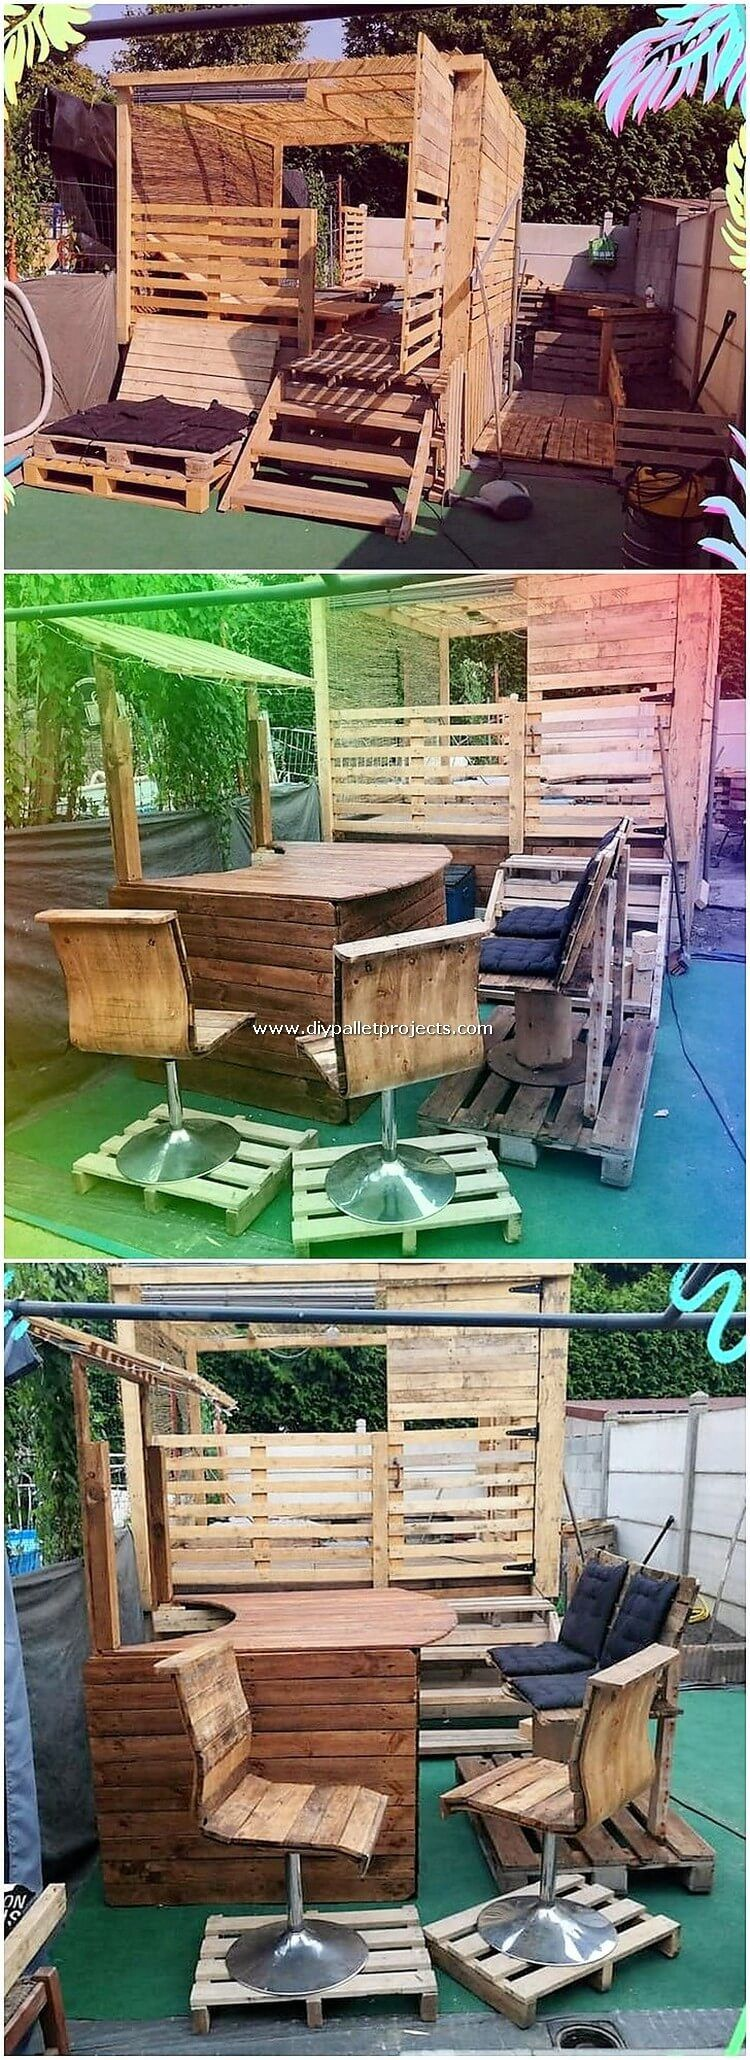 Open, this image of wooden pallet designs that would be ...